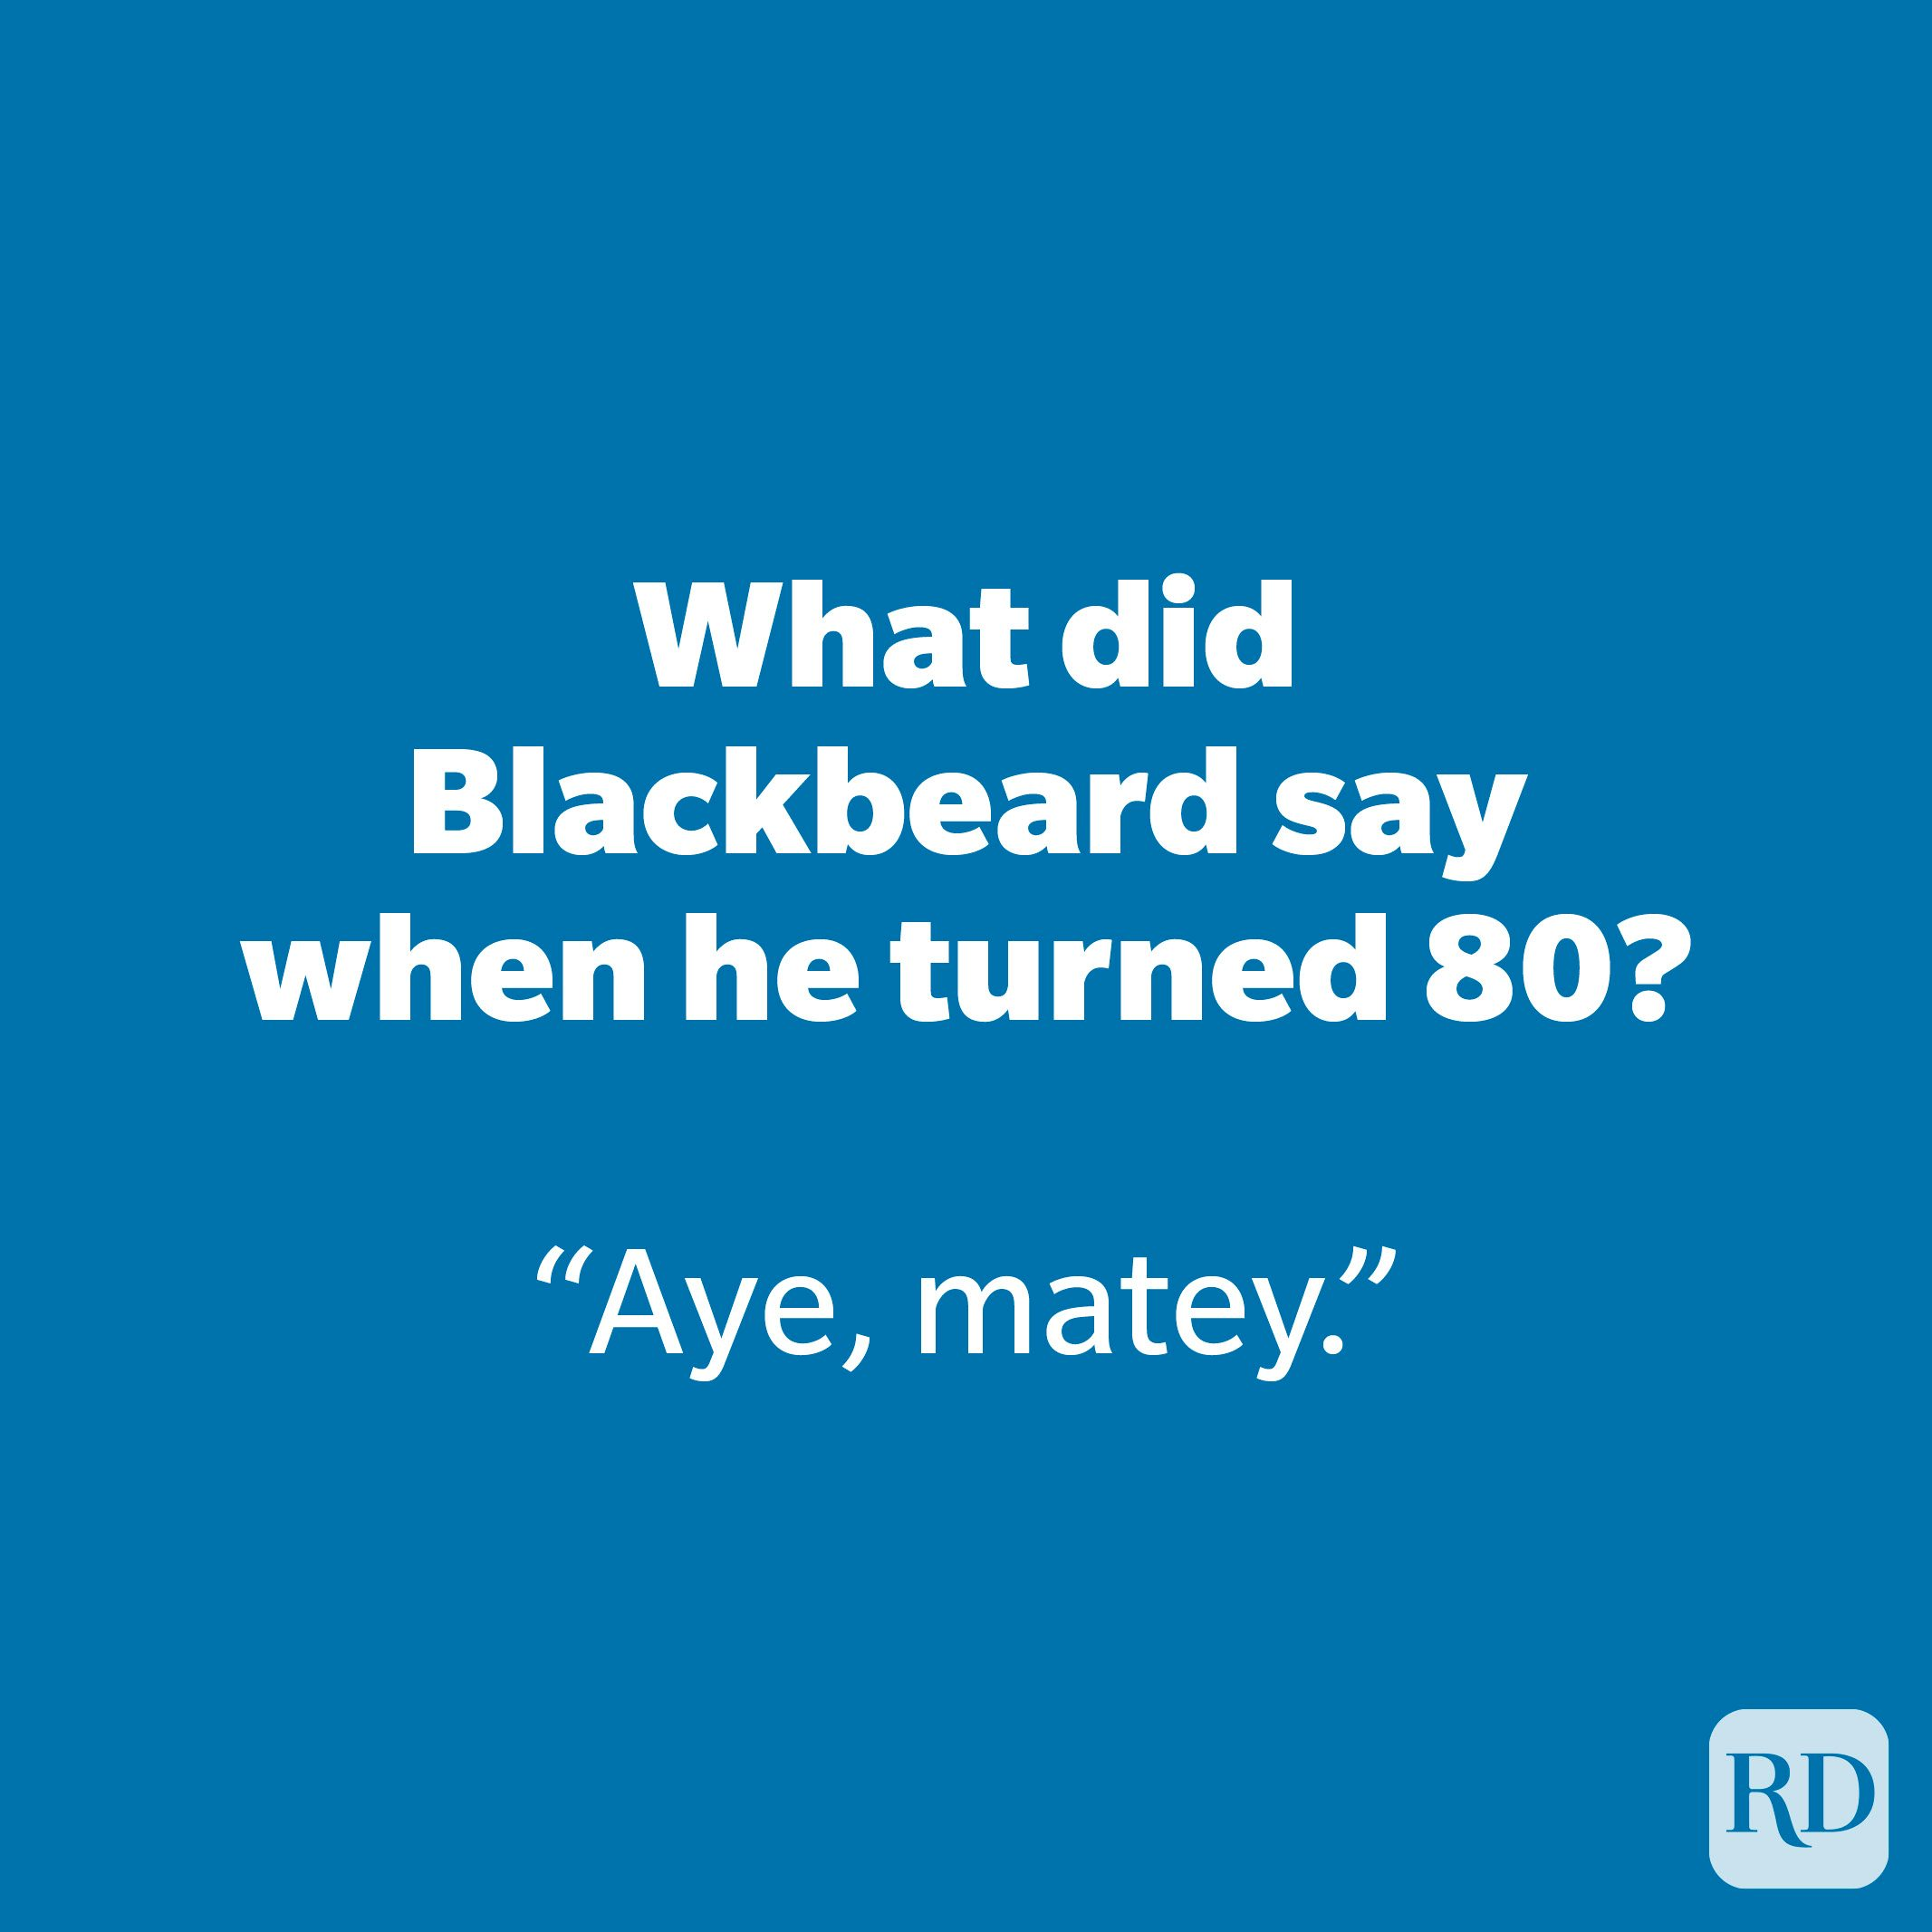 What did Blackbeard say when he turned 80?